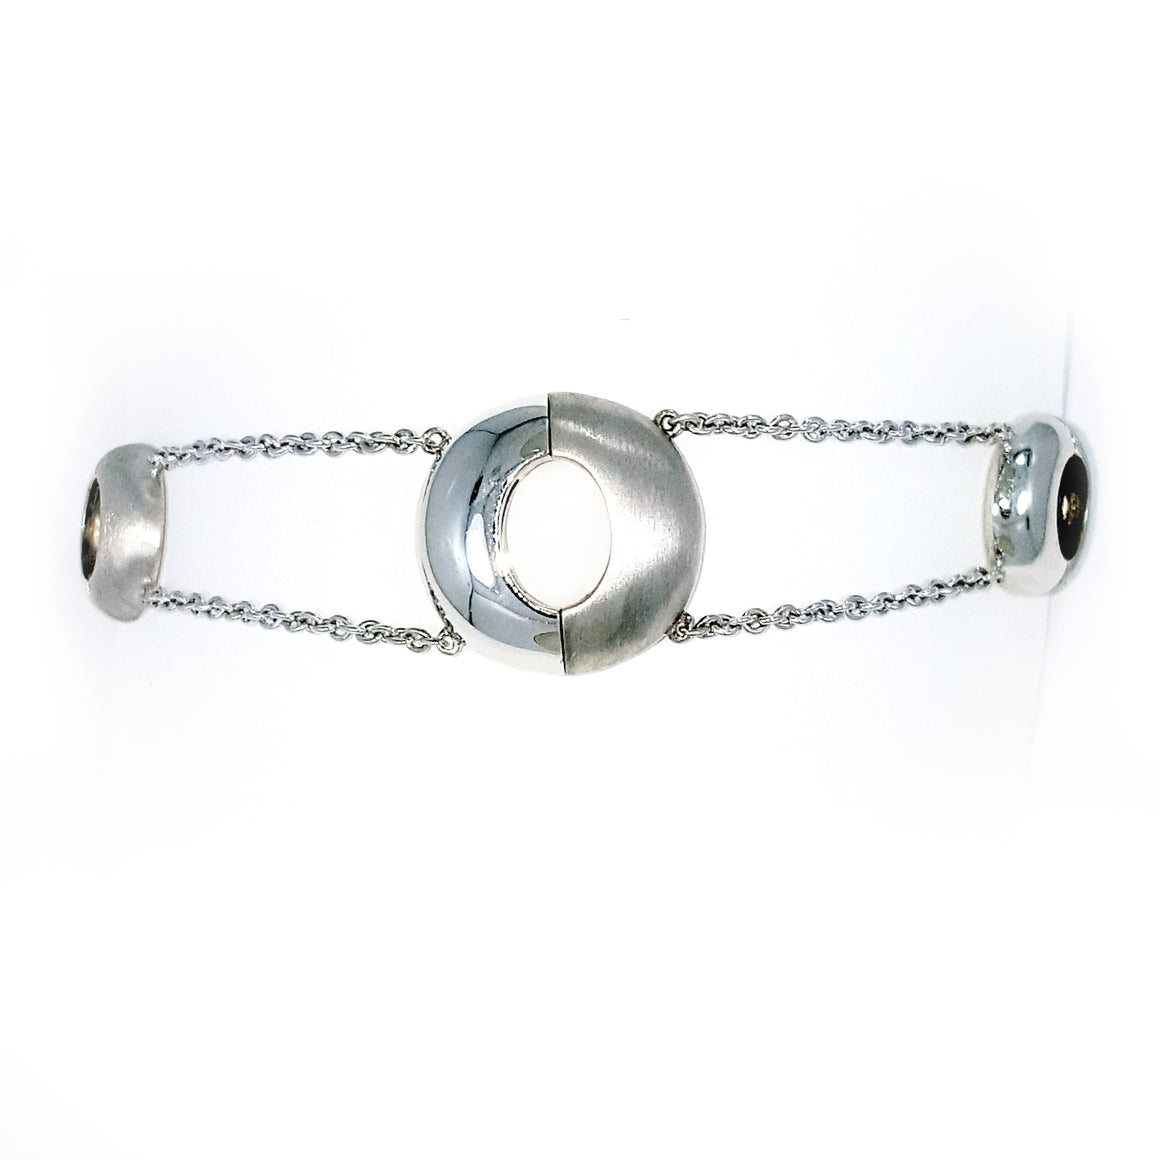 Silver magnetic bracelet chrom & matt finish